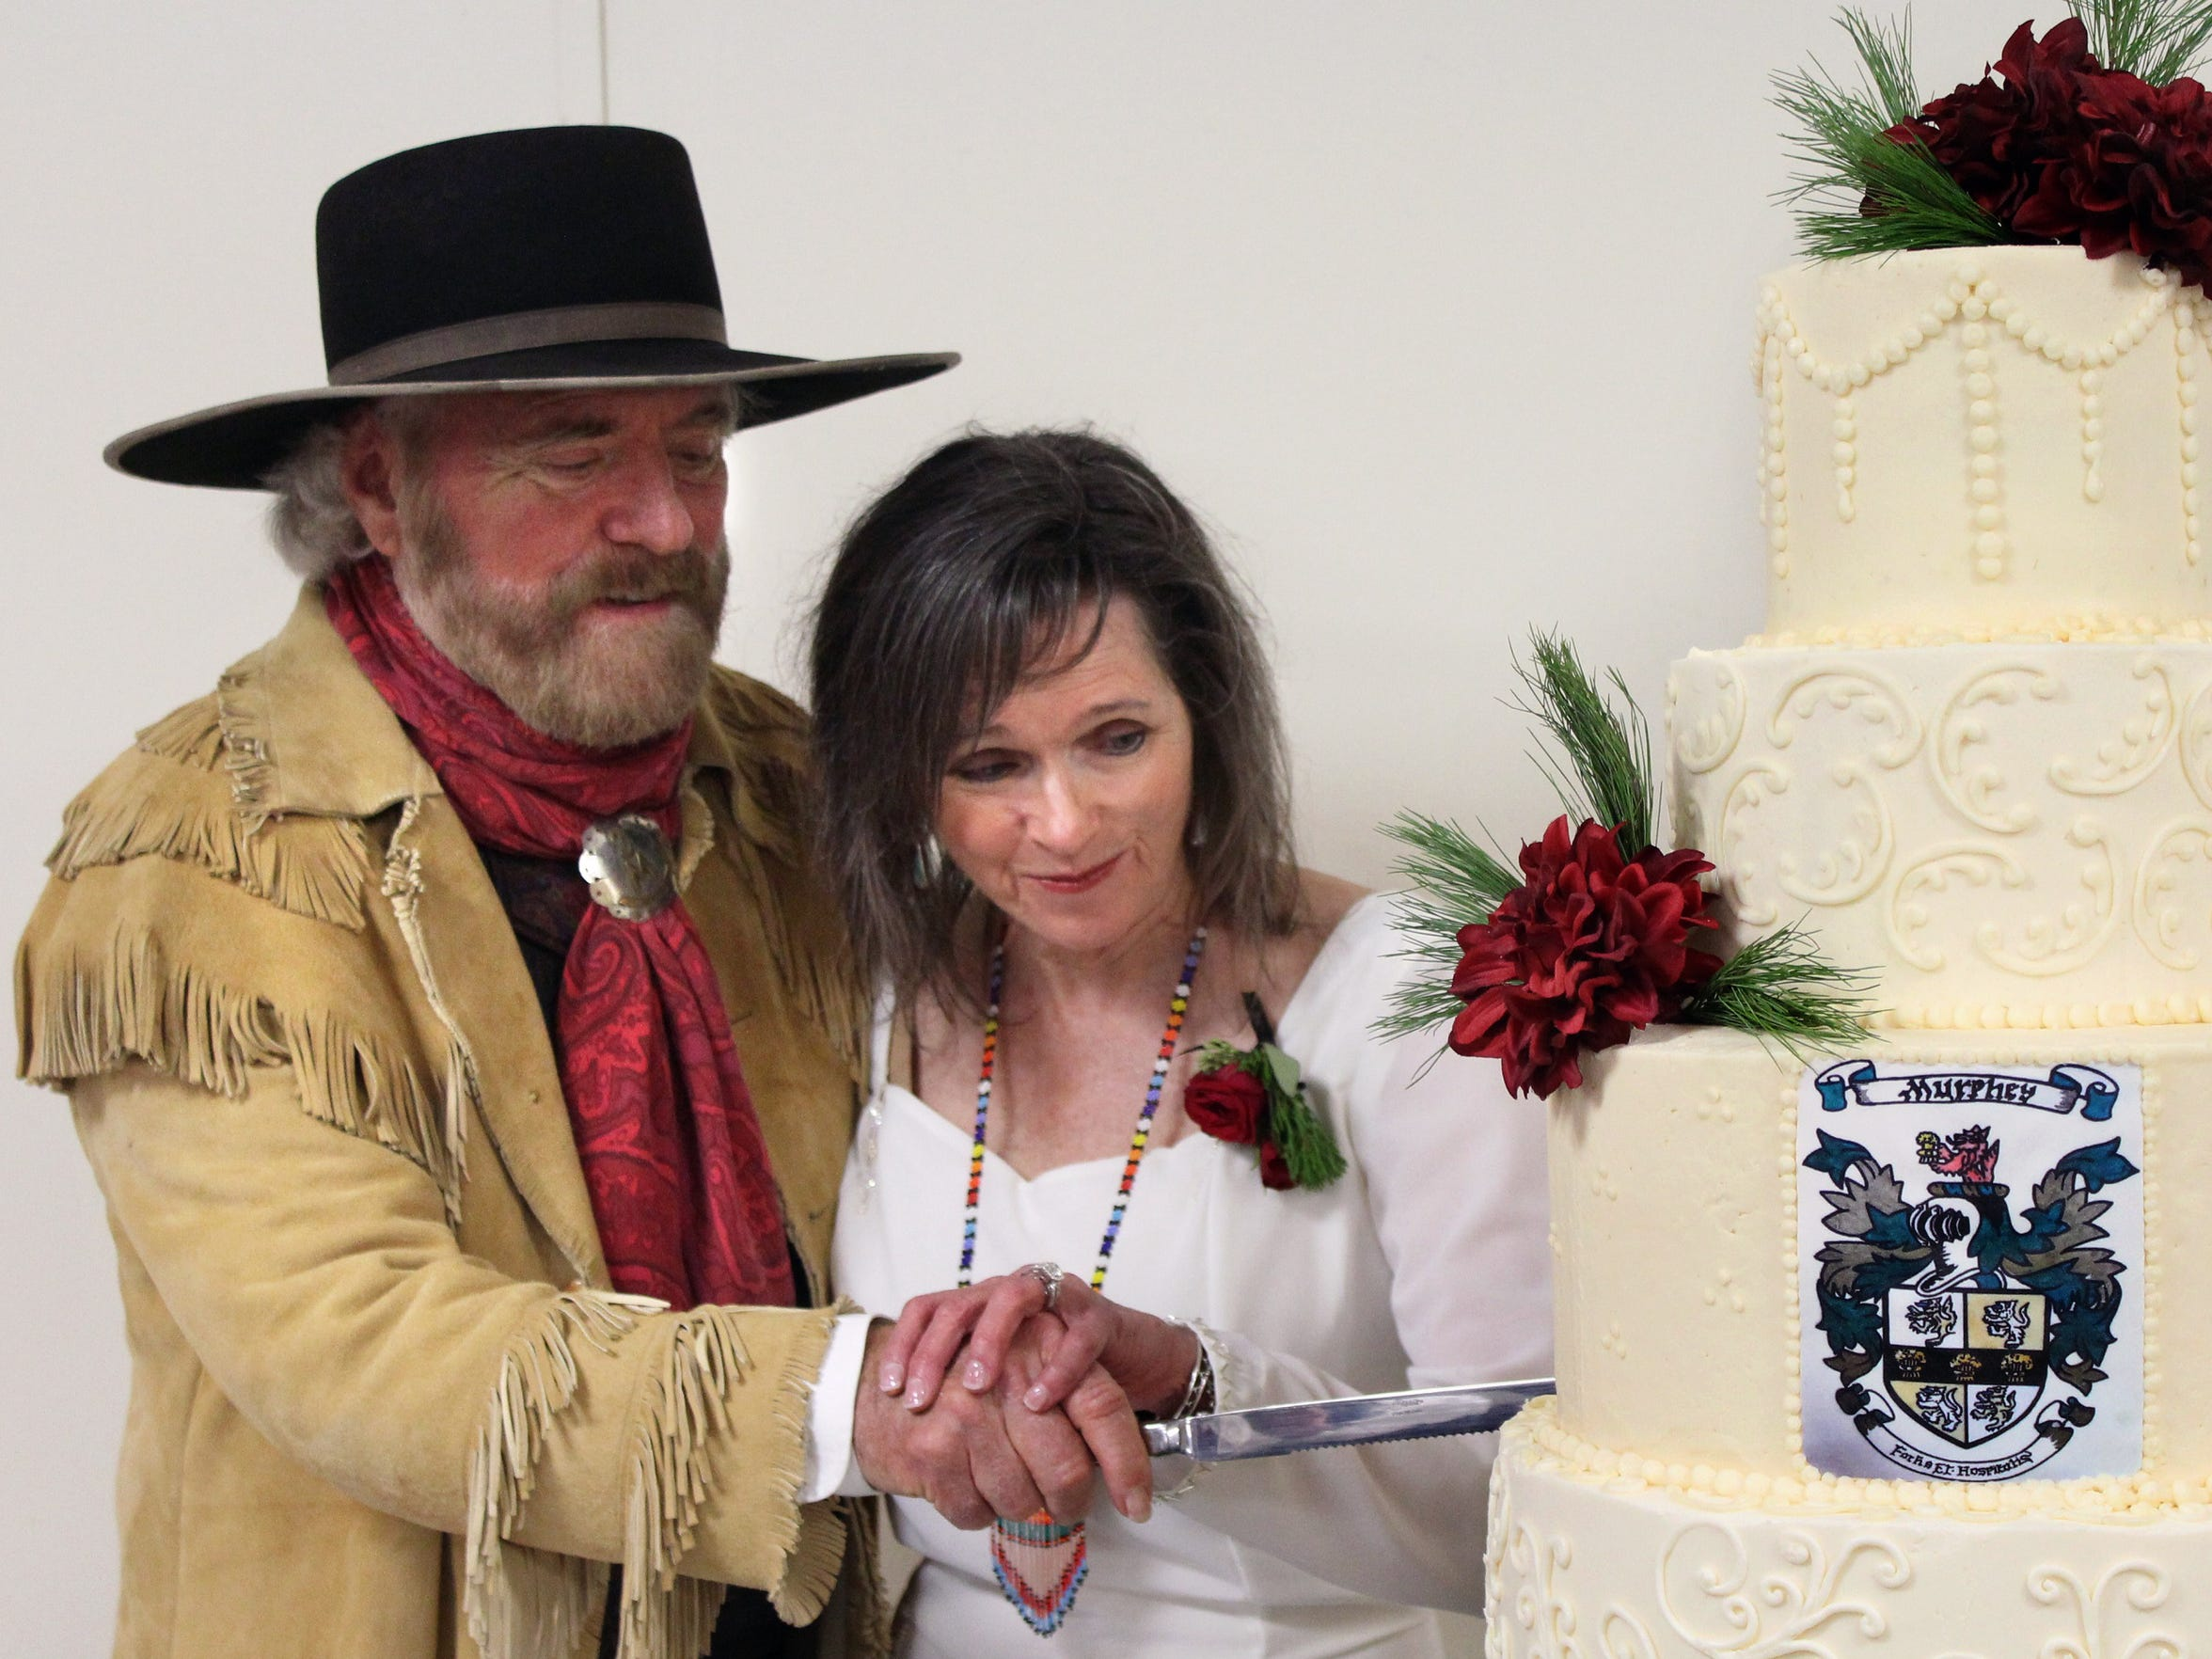 Mr. and Mrs. Michael Martin Murphey spared no tradition at their wedding Dec 16 in Anson, cutting a cake adorned with the Murphey crest.